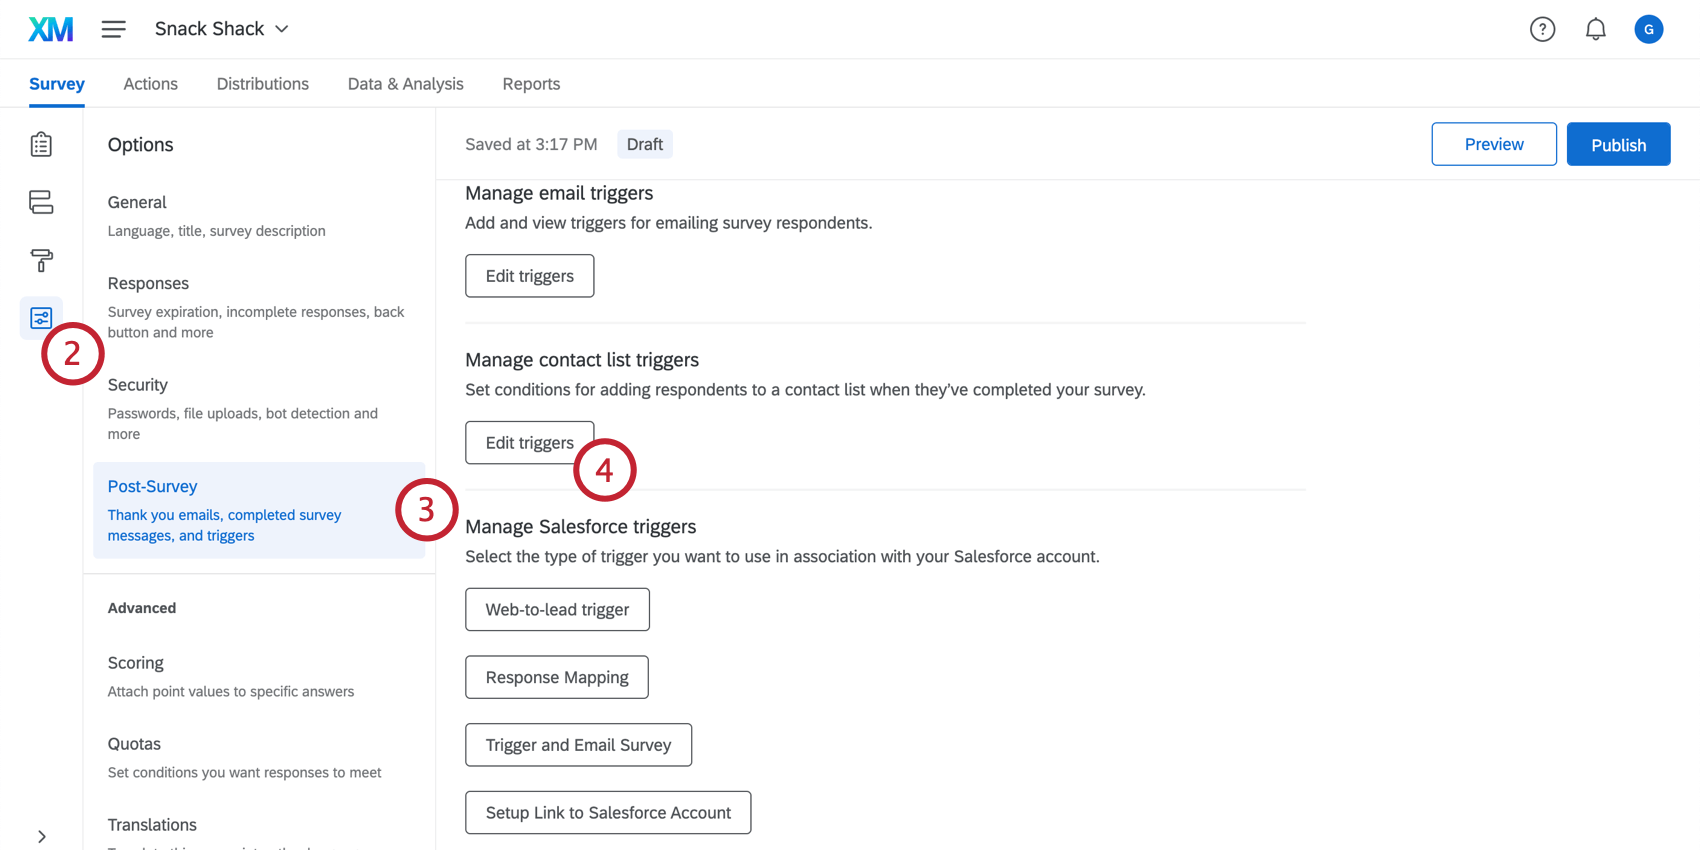 Under the survey options, navigating to the post-survey section and clicking Edit triggers